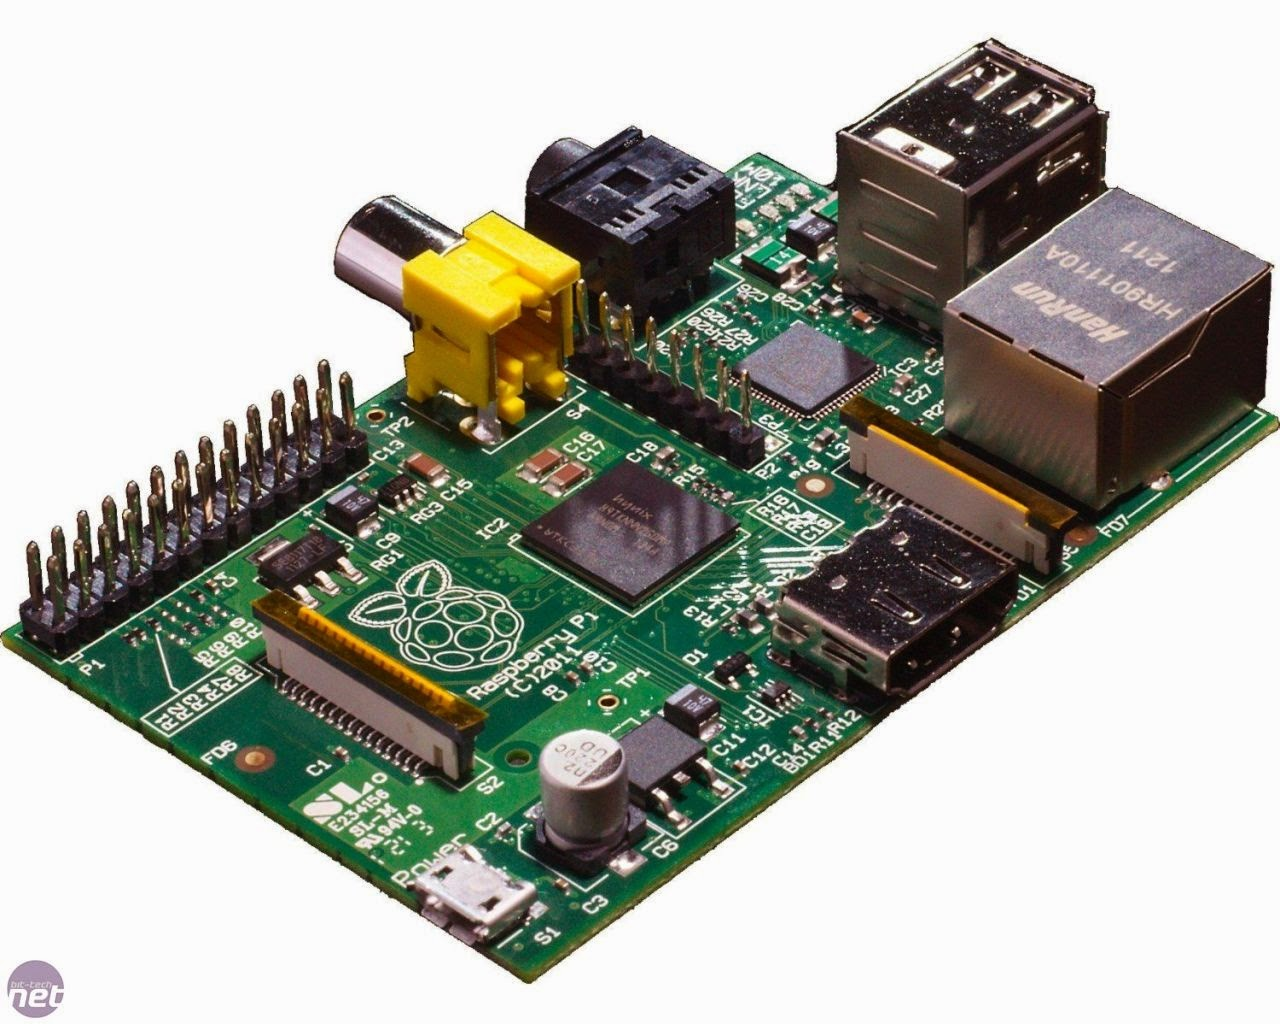 fun raspberry pi projects Find basic raspberry pi tutorials to learn and get started with it, along with some basic projects for beginners here you can also find some interesting cool raspberry pi projects and project ideas.